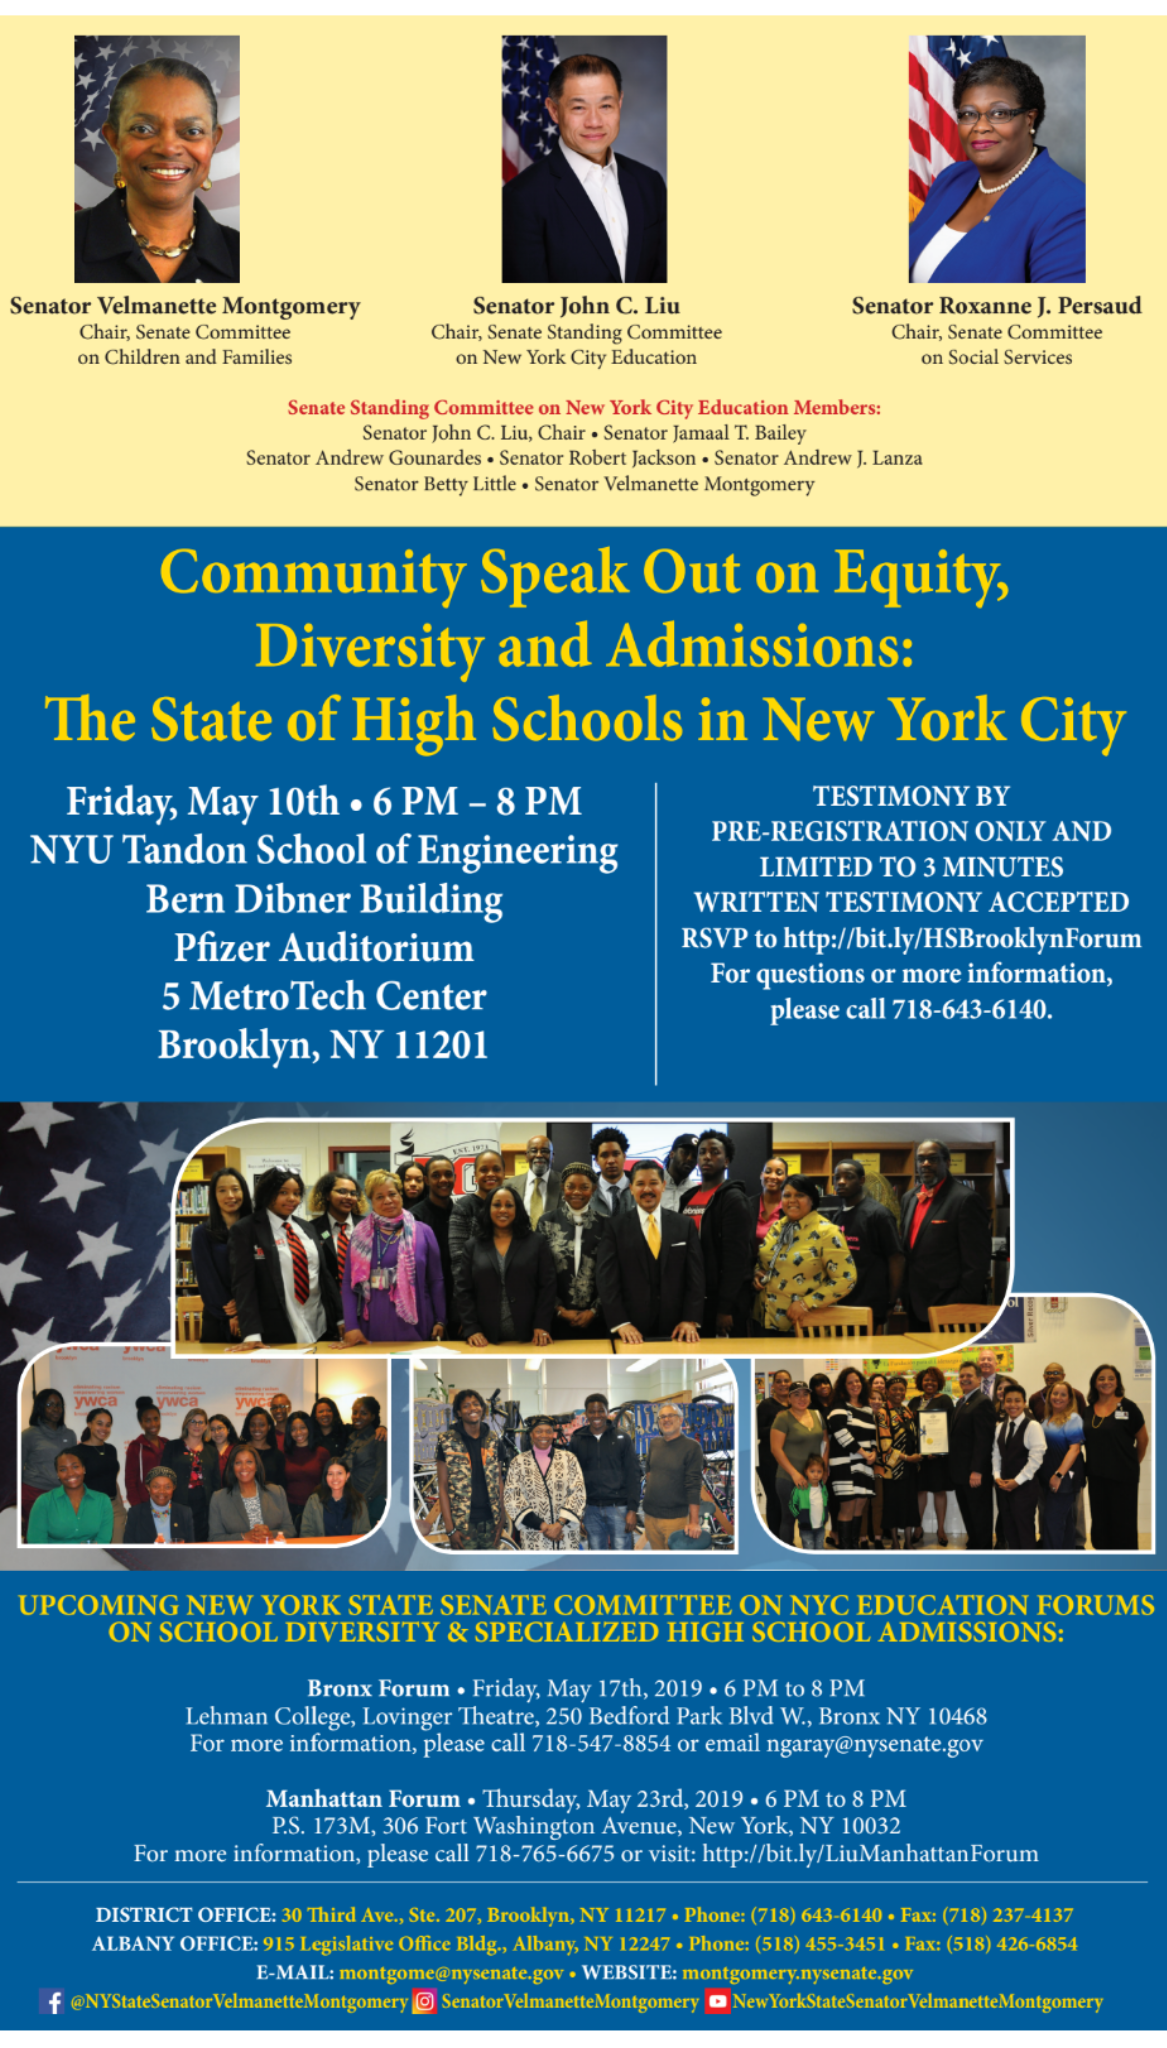 School Diversity and Specialized High School Admissions Community